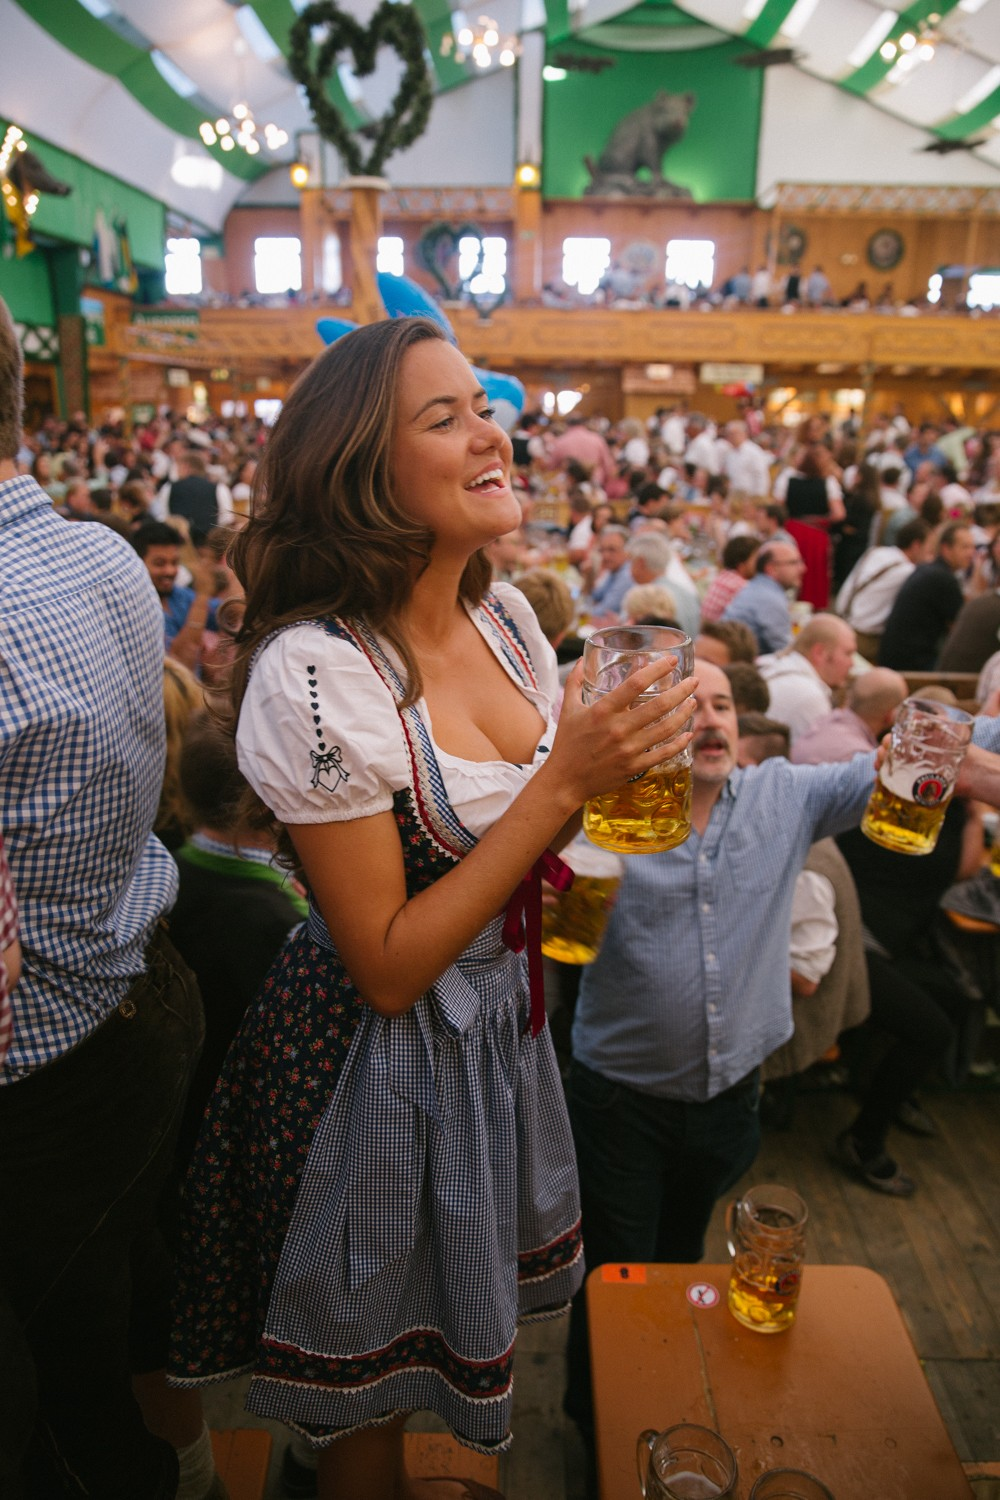 oktoberfest-germany-28